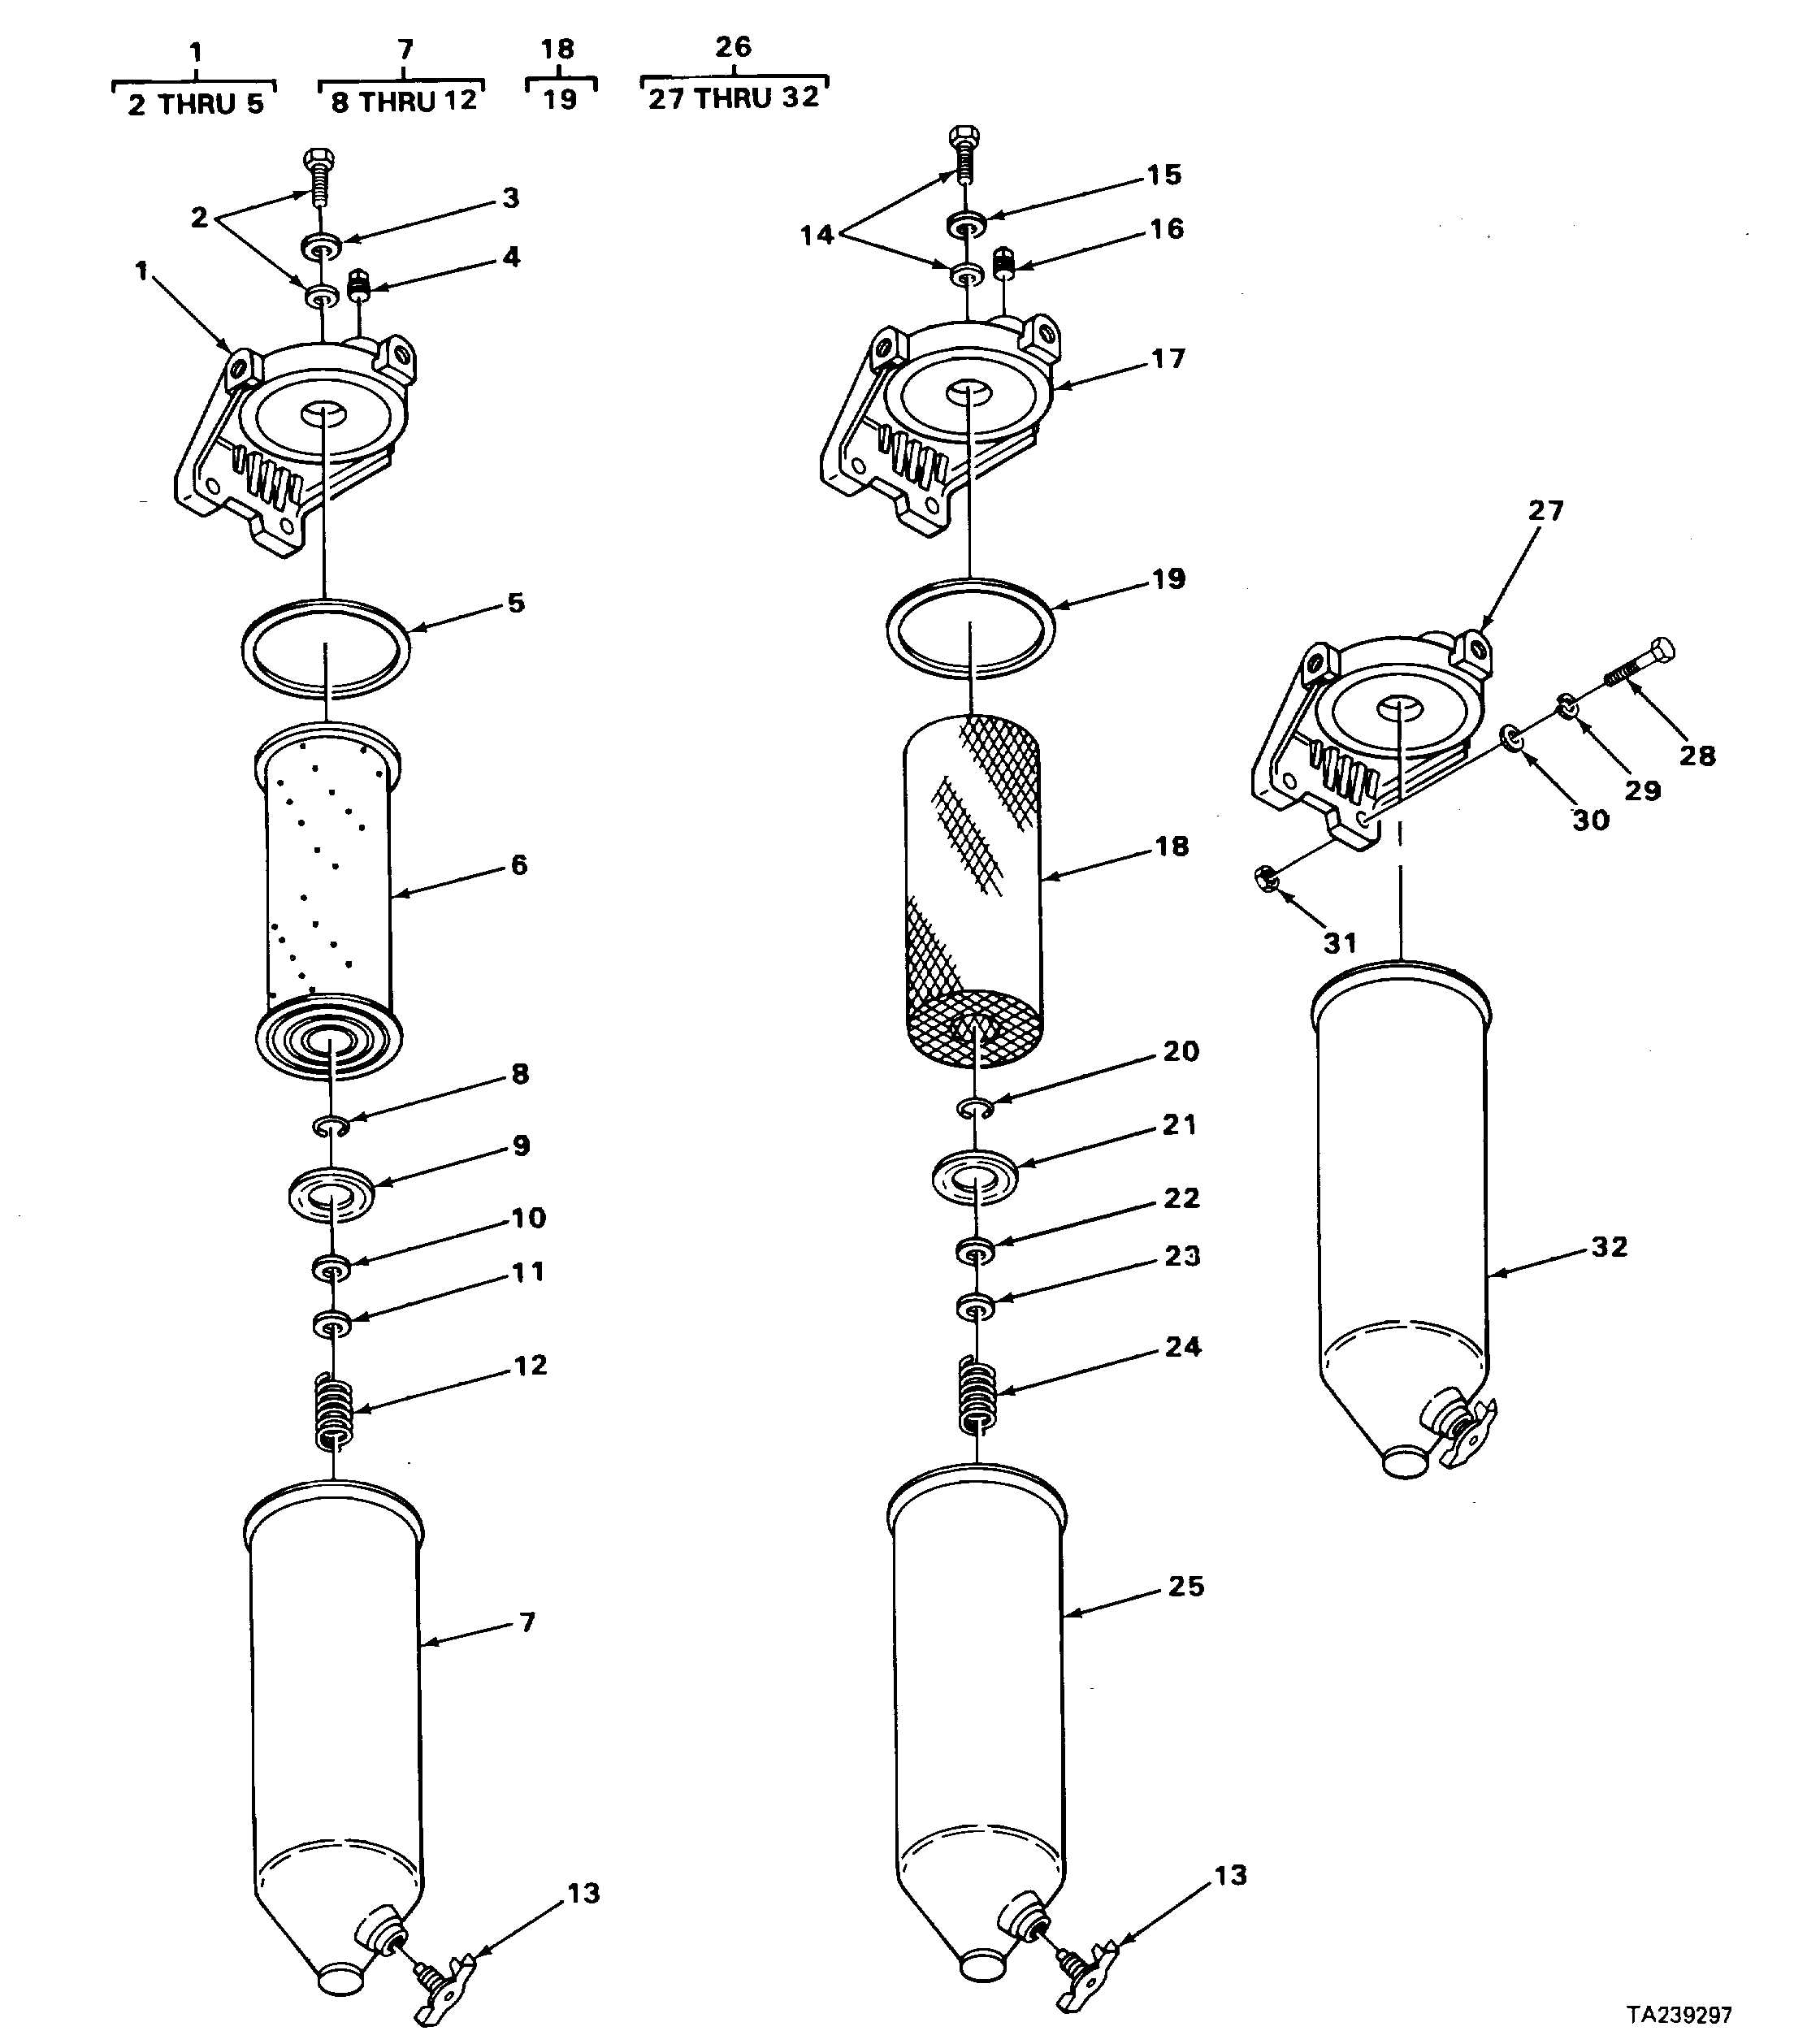 FIGURE 44. FUEL FILTERS AND STRAINER